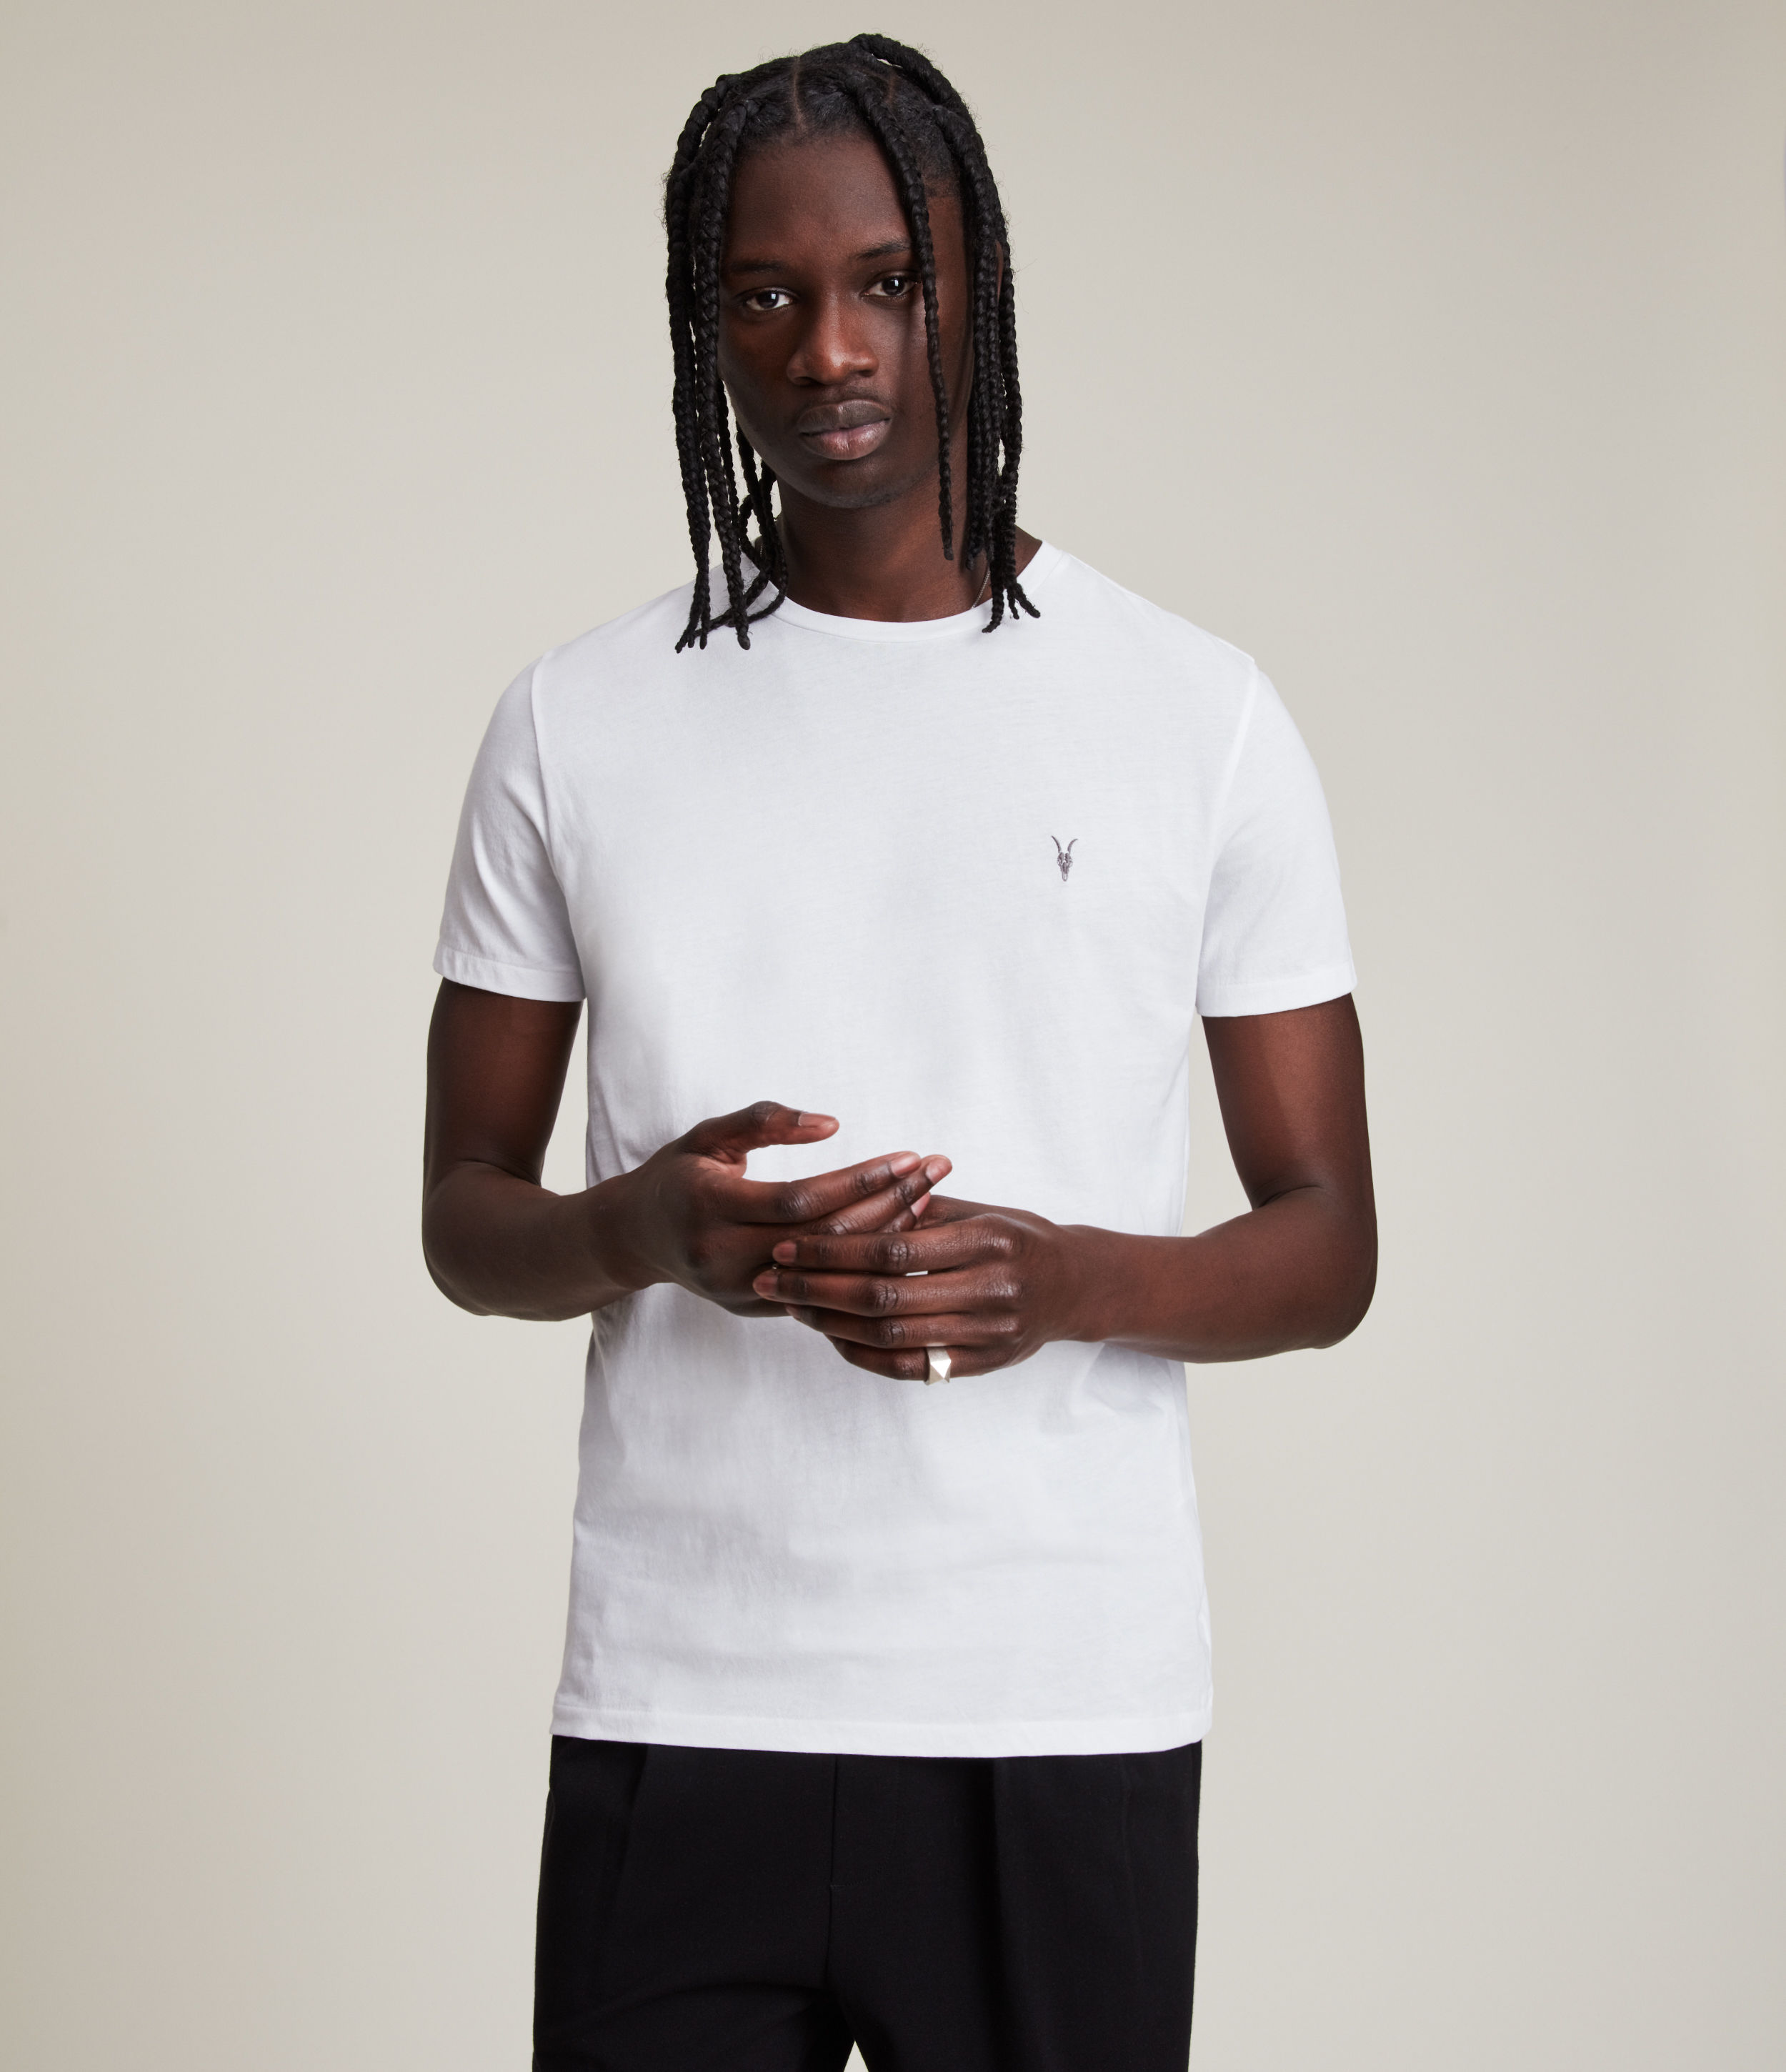 AllSaints Men's Cotton Regular Fit Tonic Crew T-Shirt, White, Size: XL